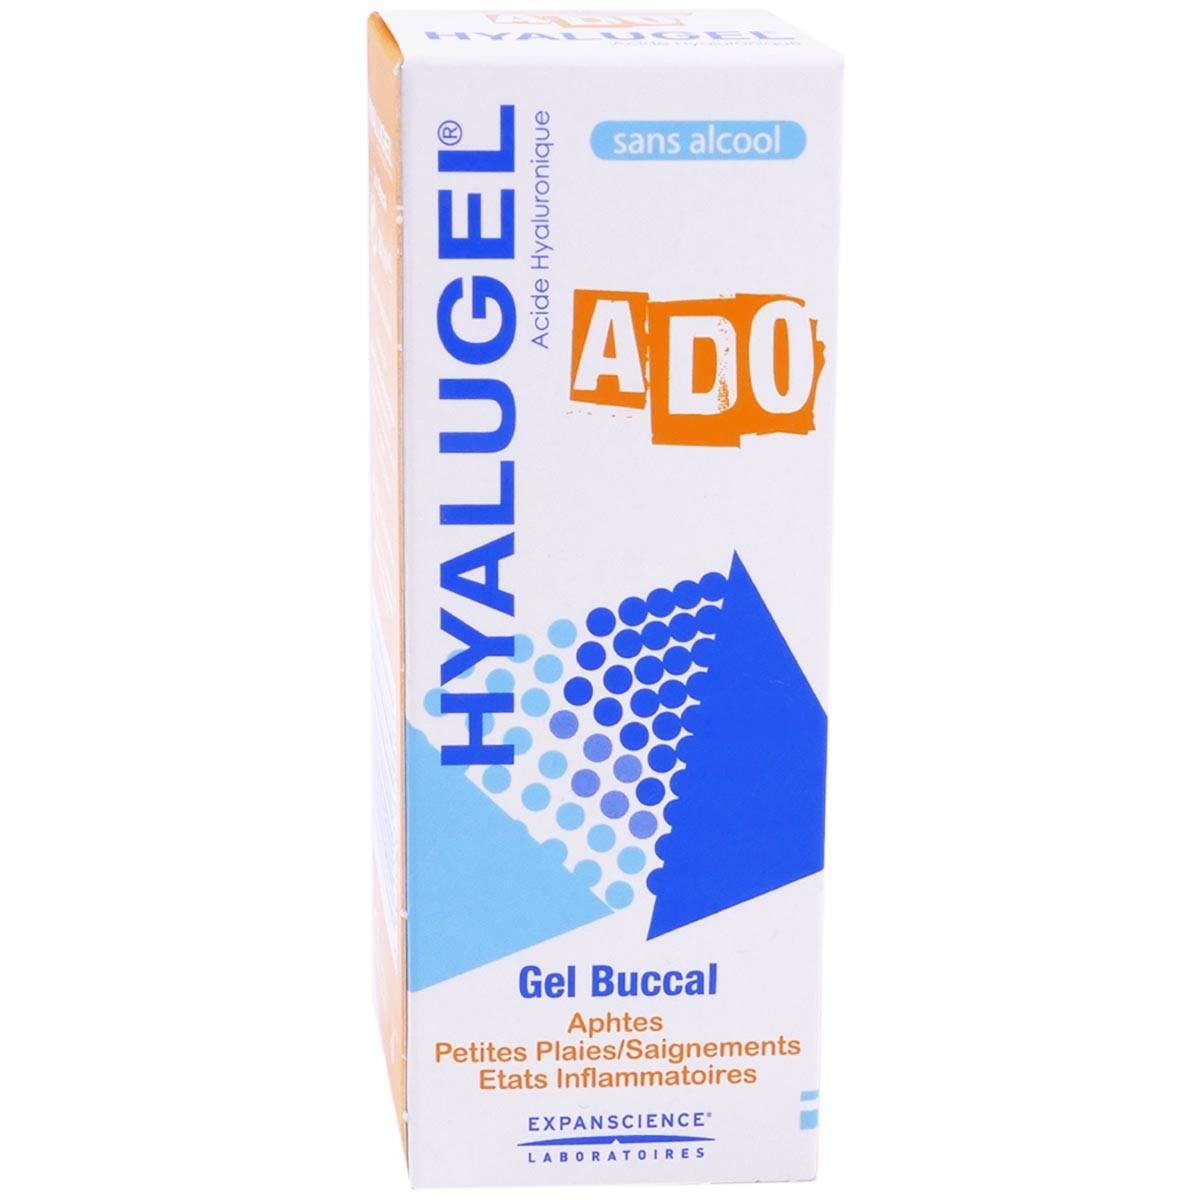 EXPANSCIENCE Hyalugel ado gel buccal 20ml